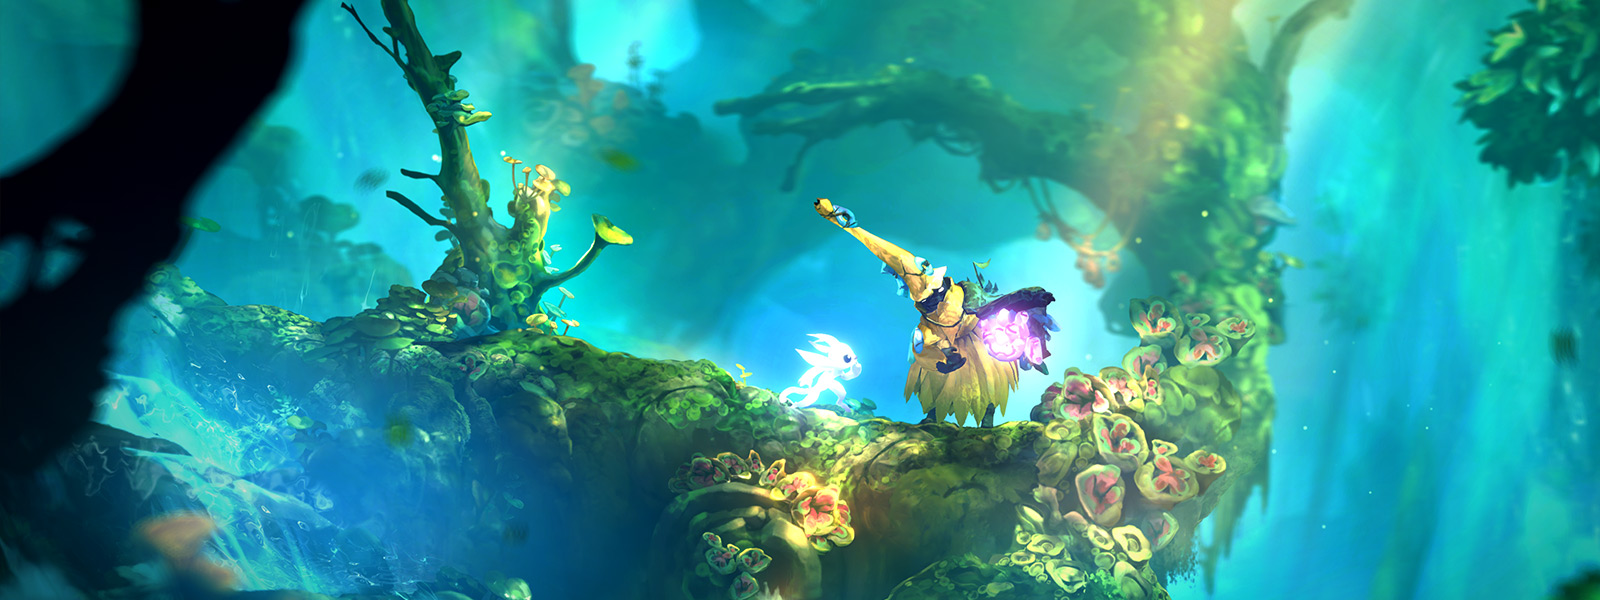 Screenshot from Ori and the Will of the Wisps